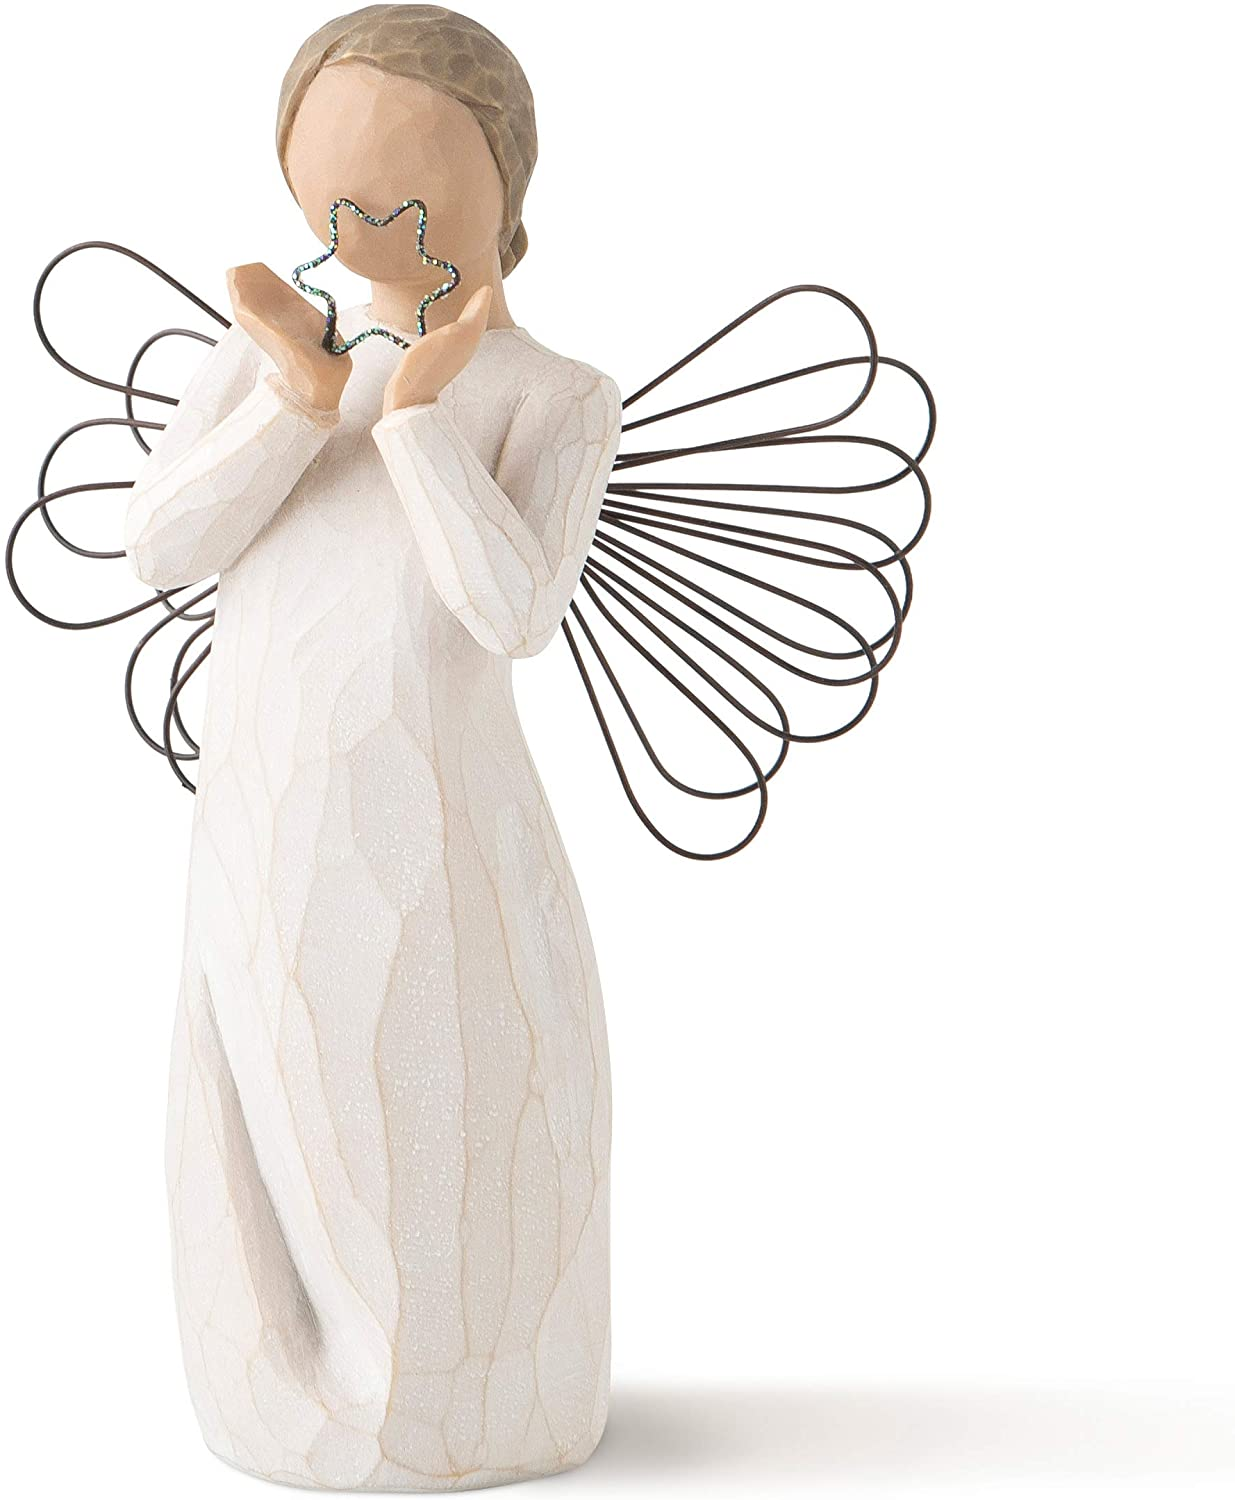 Willow Tree Youre The Best Sculpted Hand-Painted Figure Angel